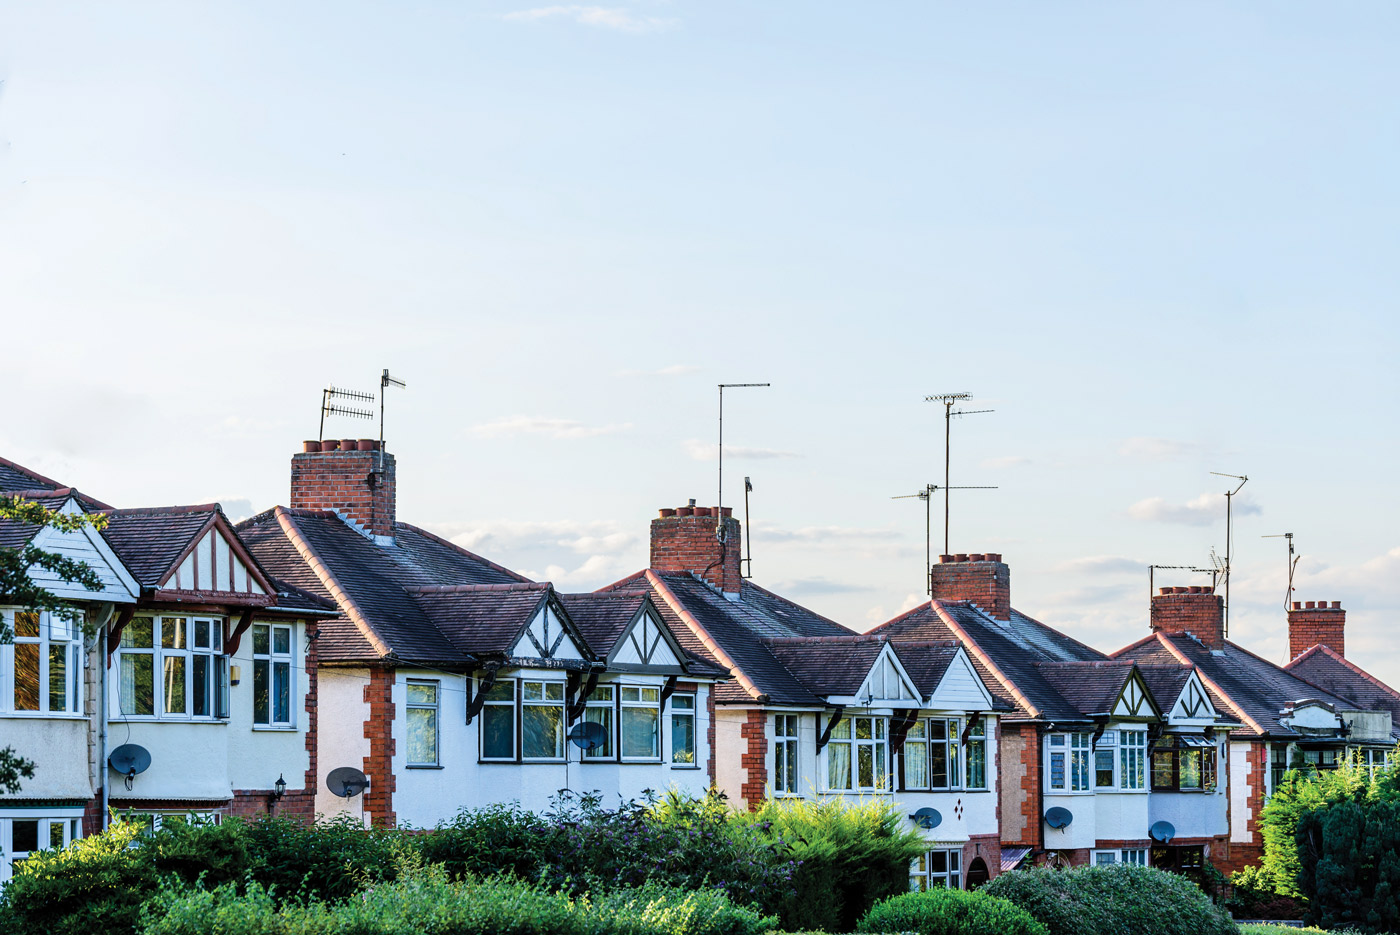 photo of a UK suburbia with white houses